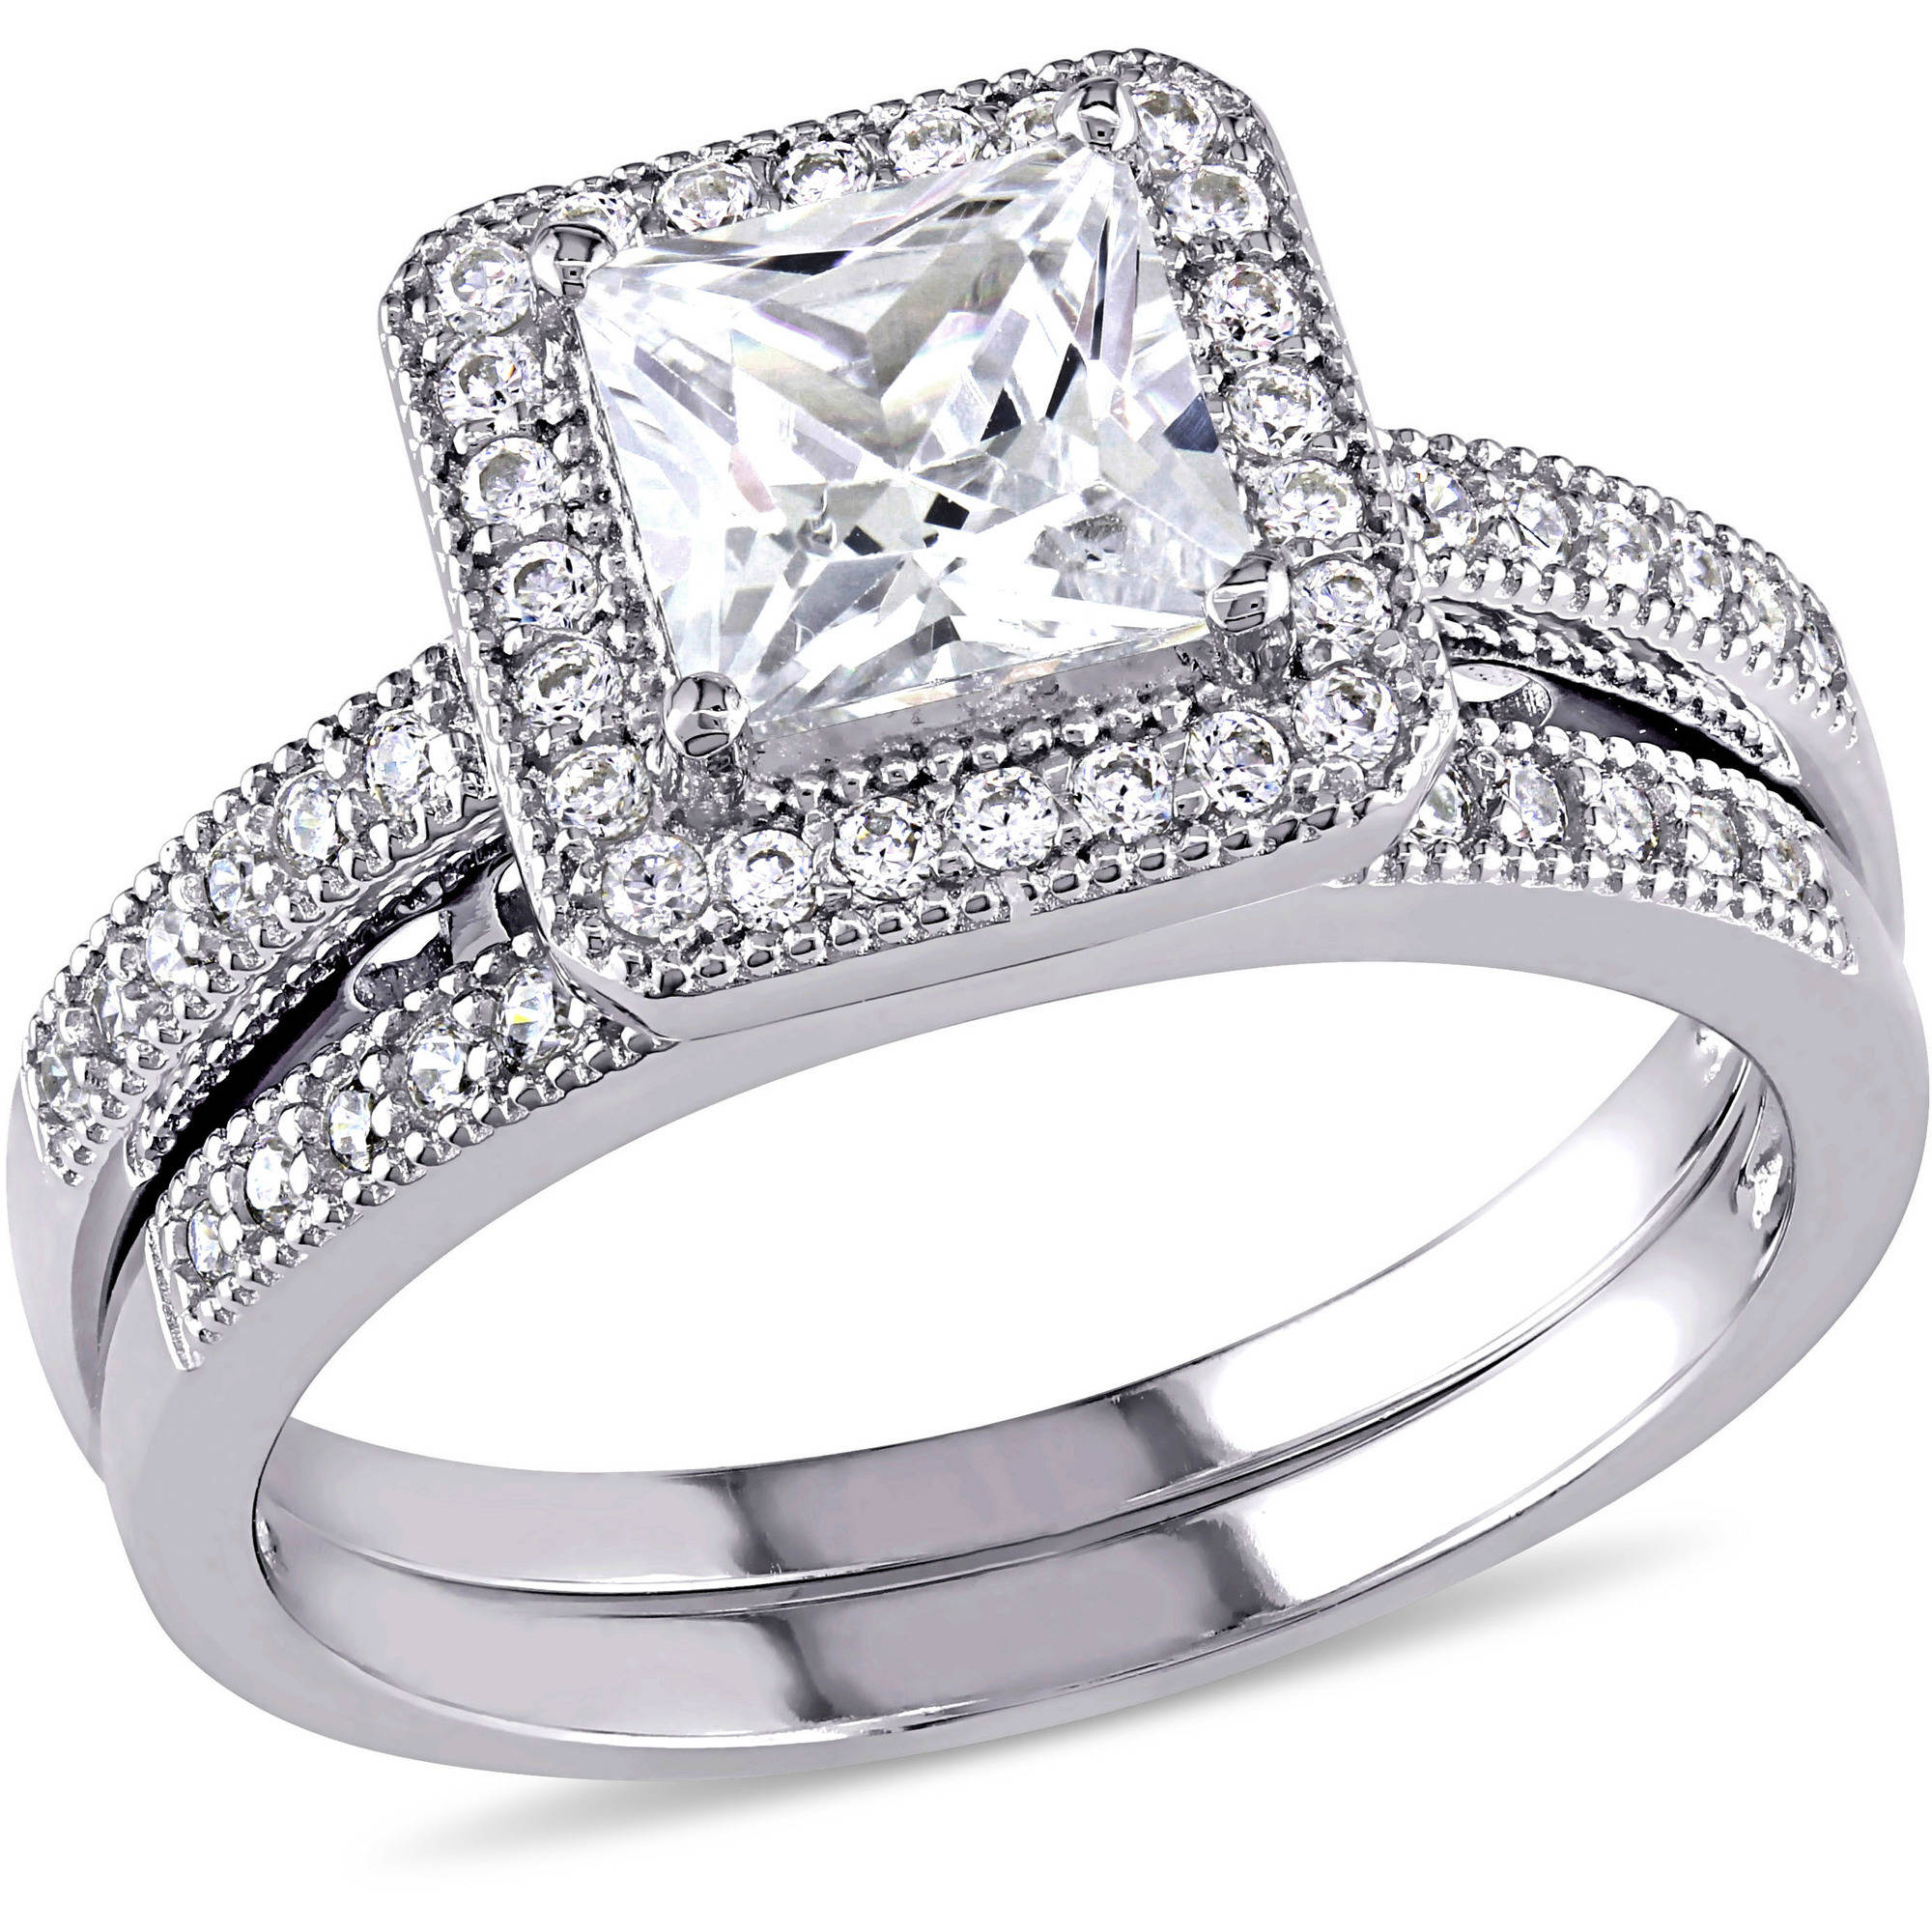 Wedding Rings From Walmart staruptalentcom